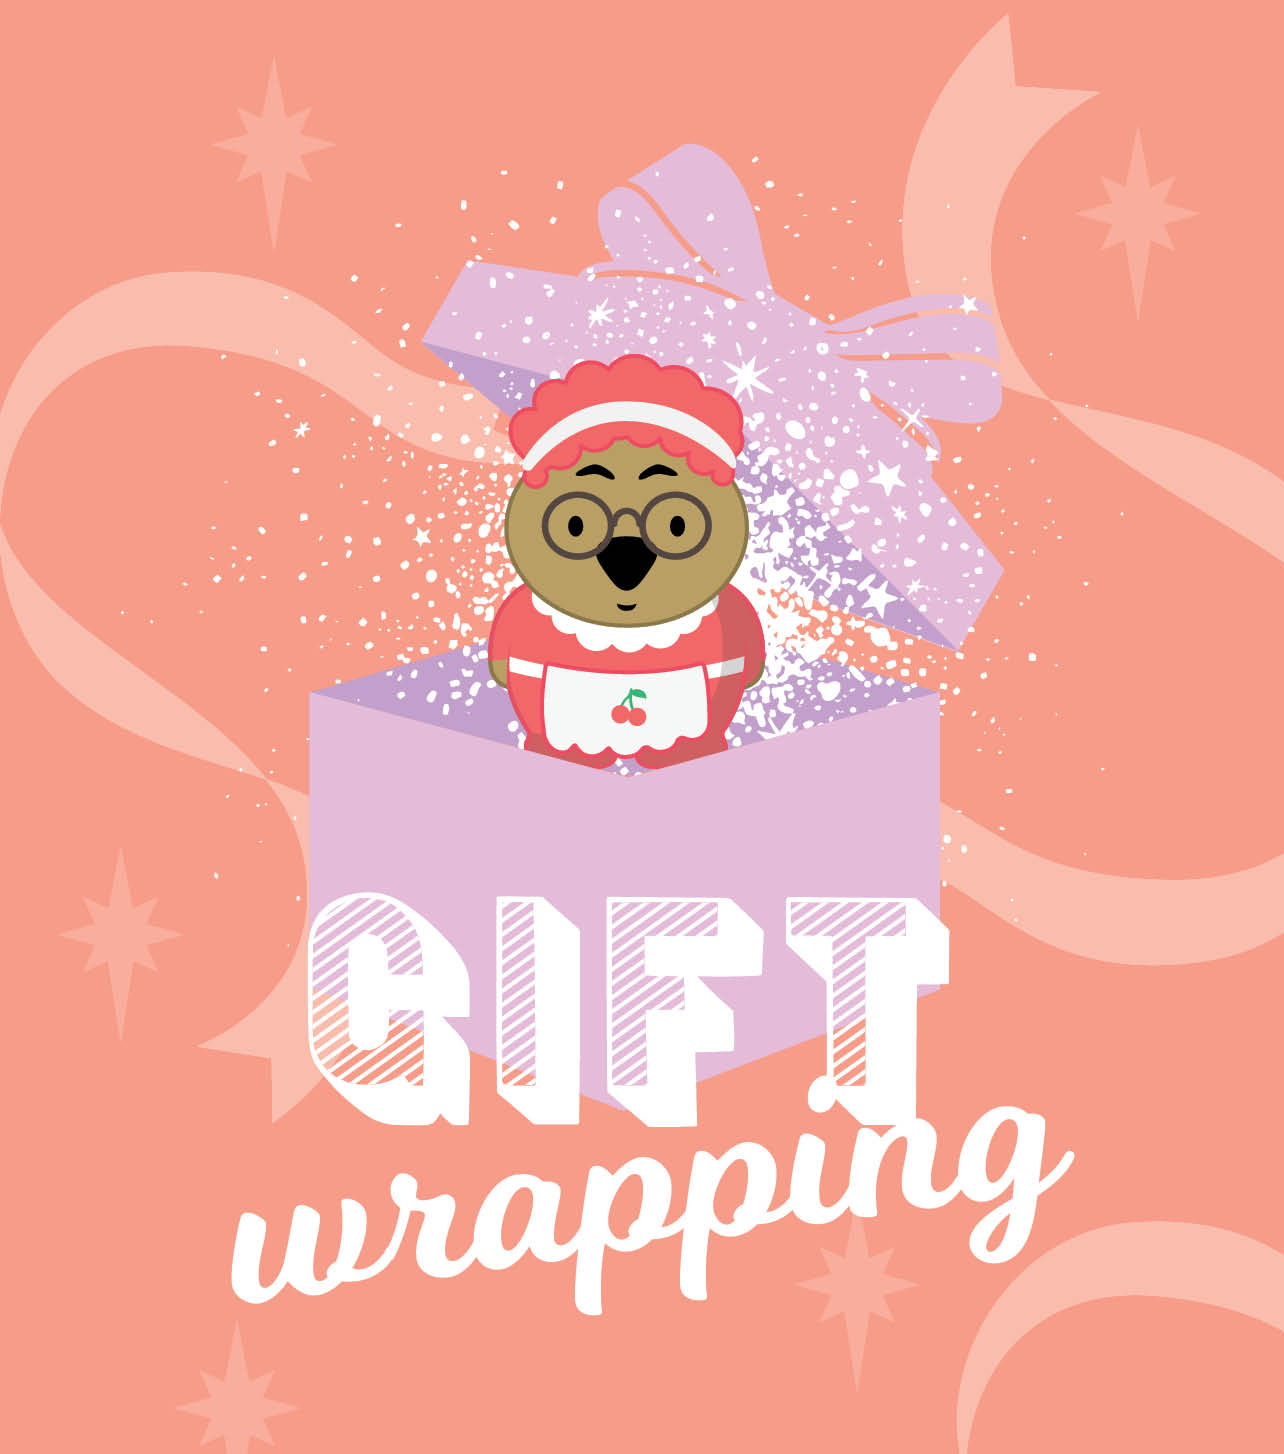 CH4806_Xmas 2019_Web Tiles_Gift Wrapping_624x727px